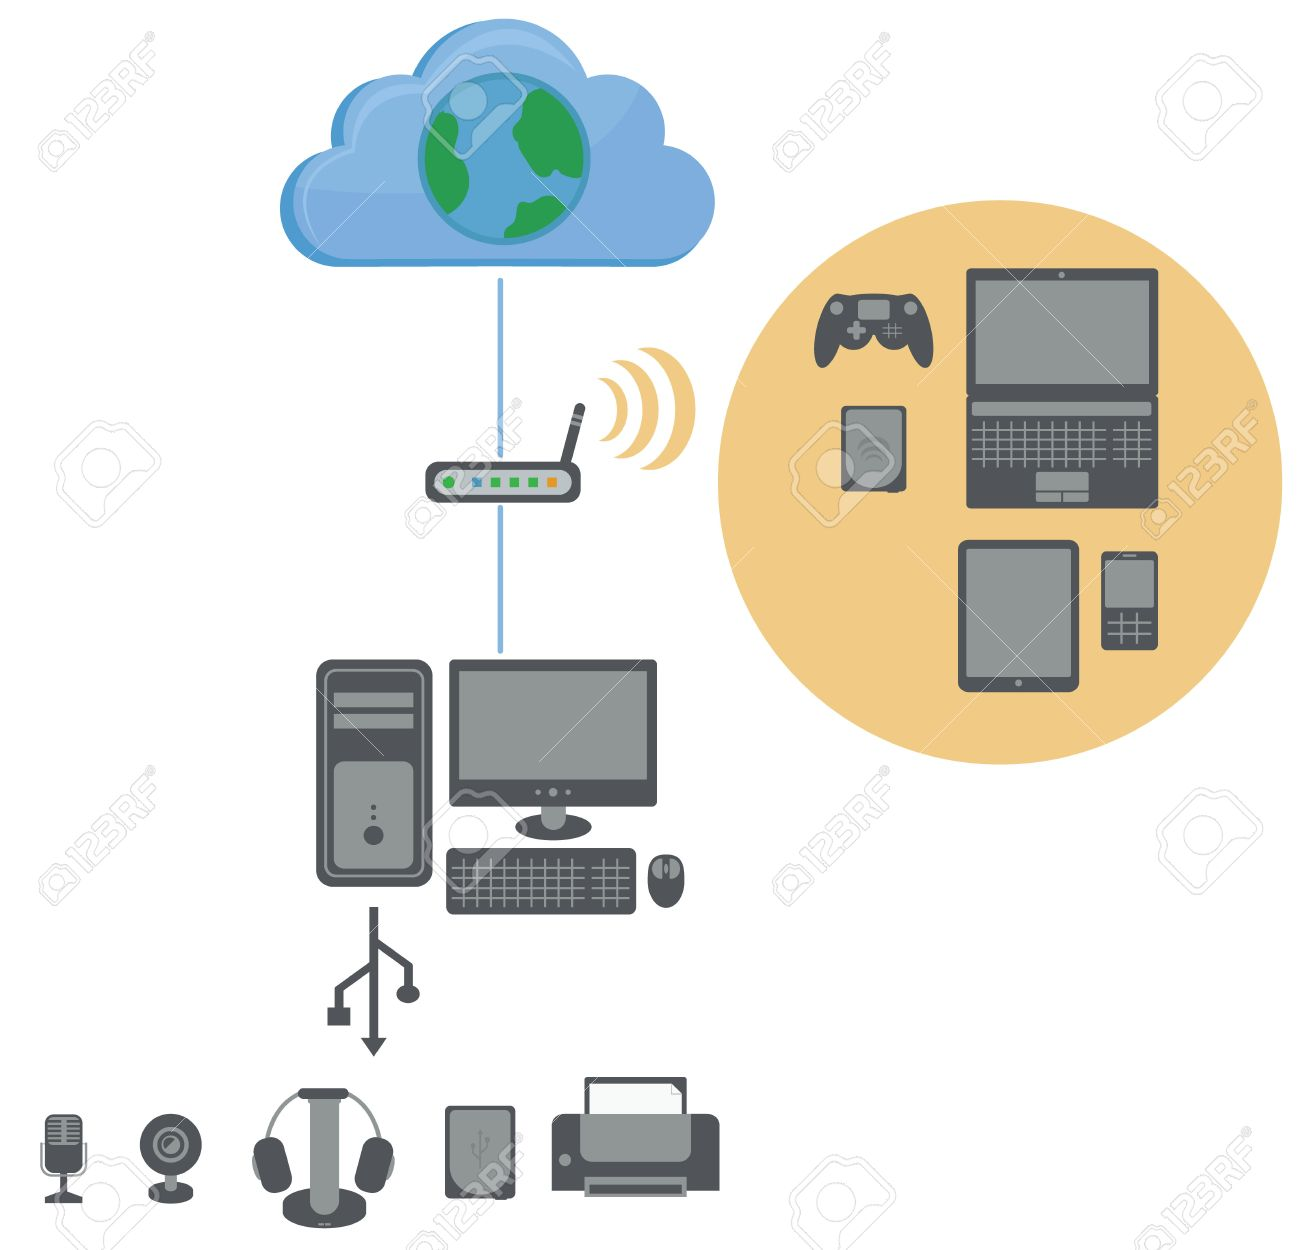 connection diagram to the internet, contains wifi router, personal  computer, usb devices and